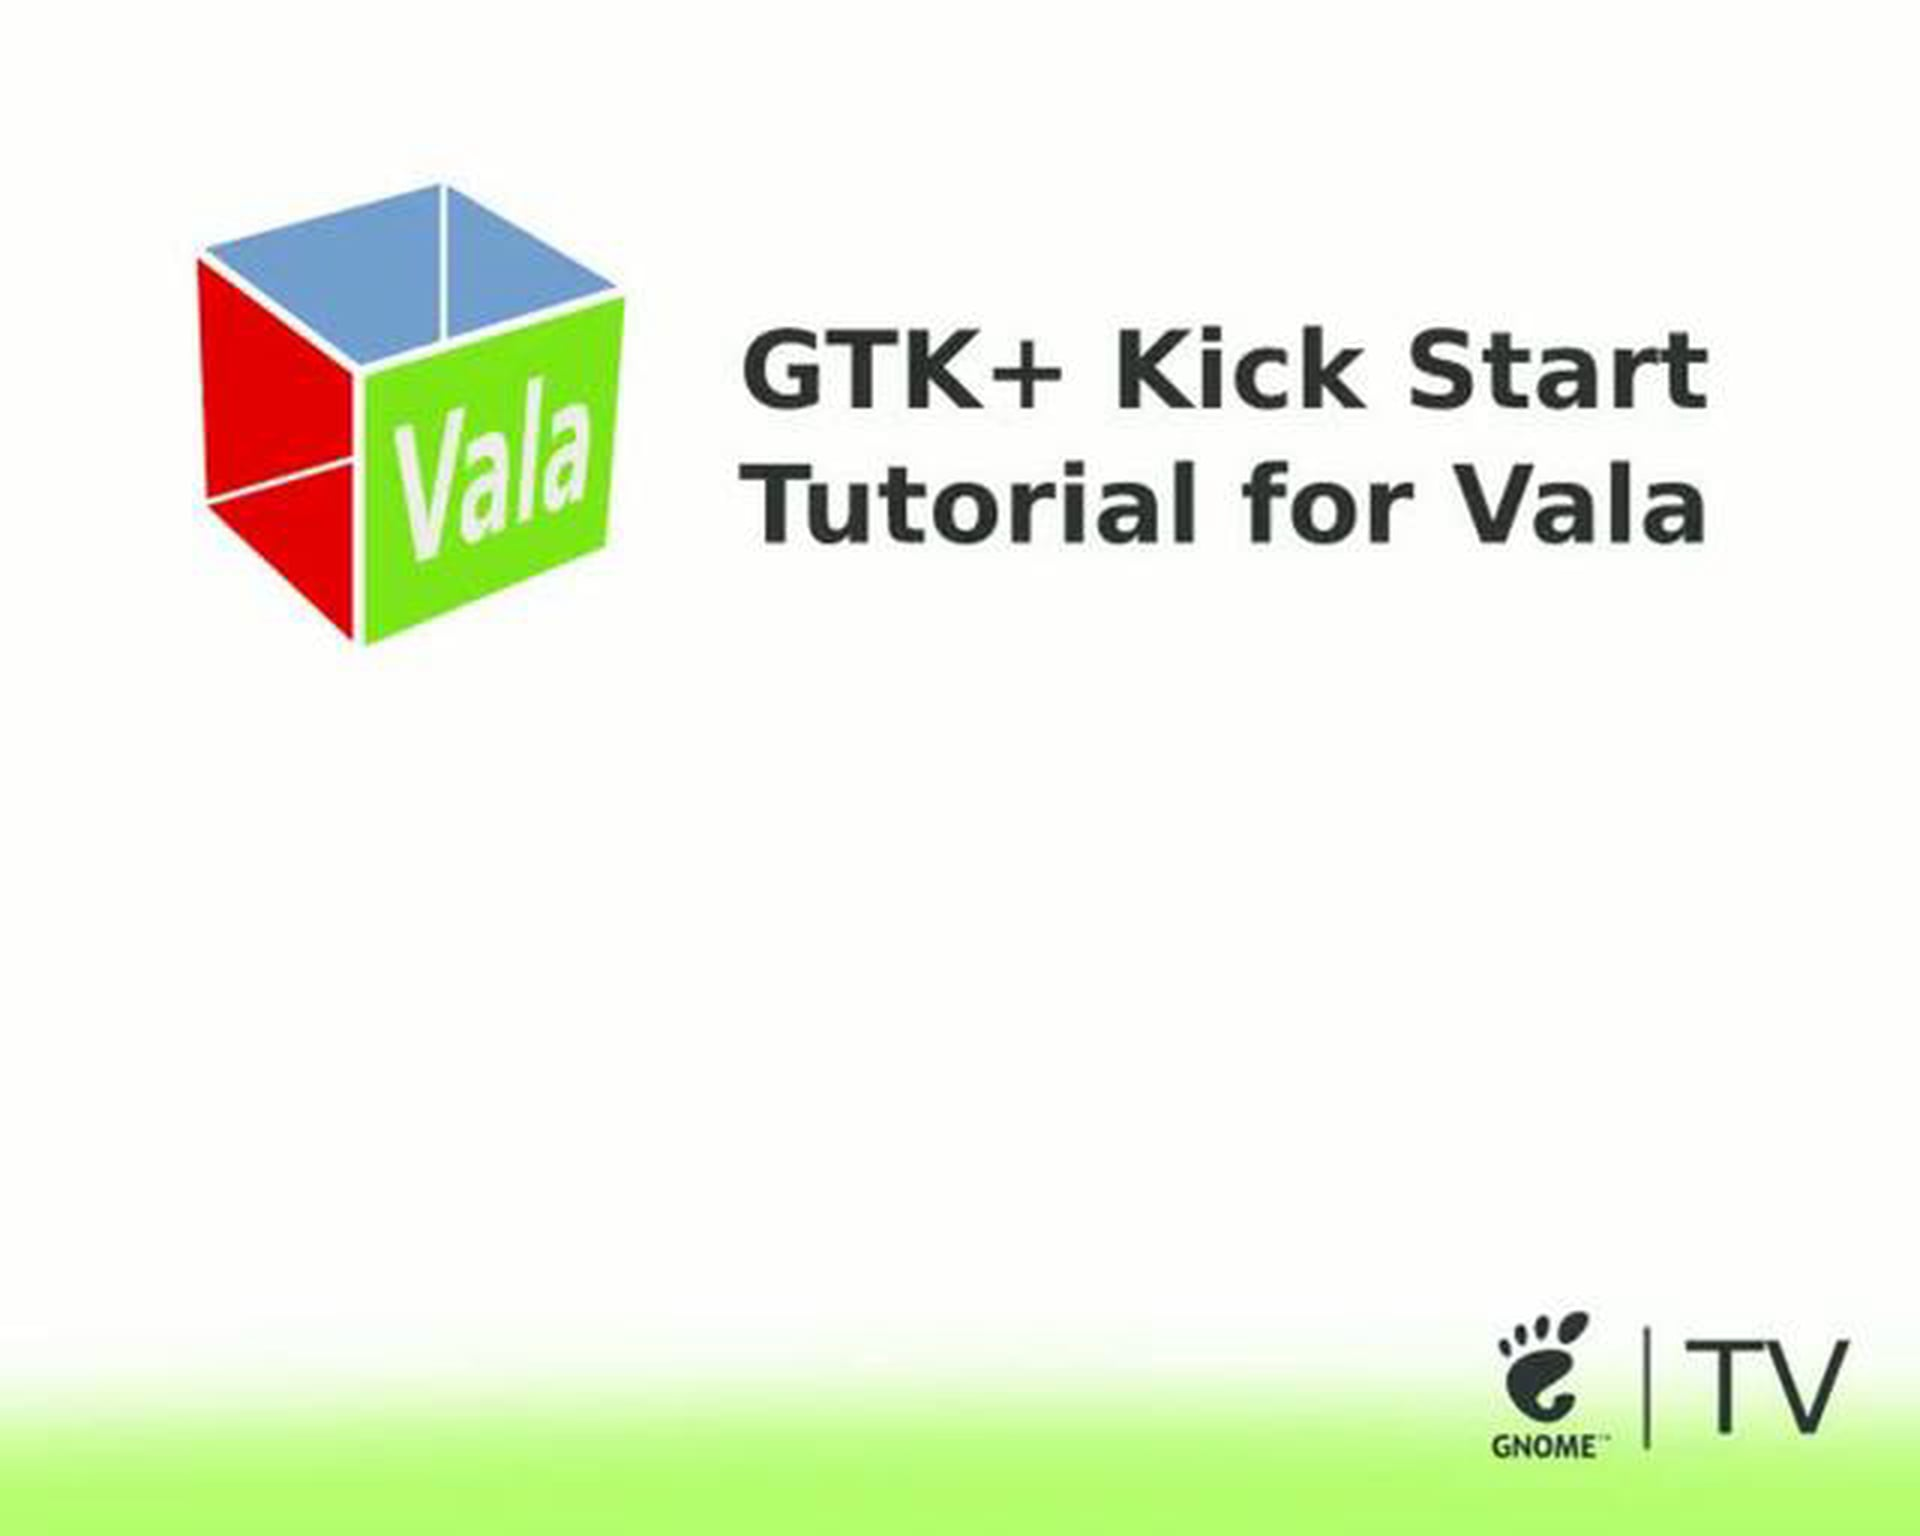 Gtk+ Kick-Start Tutorial for Vala